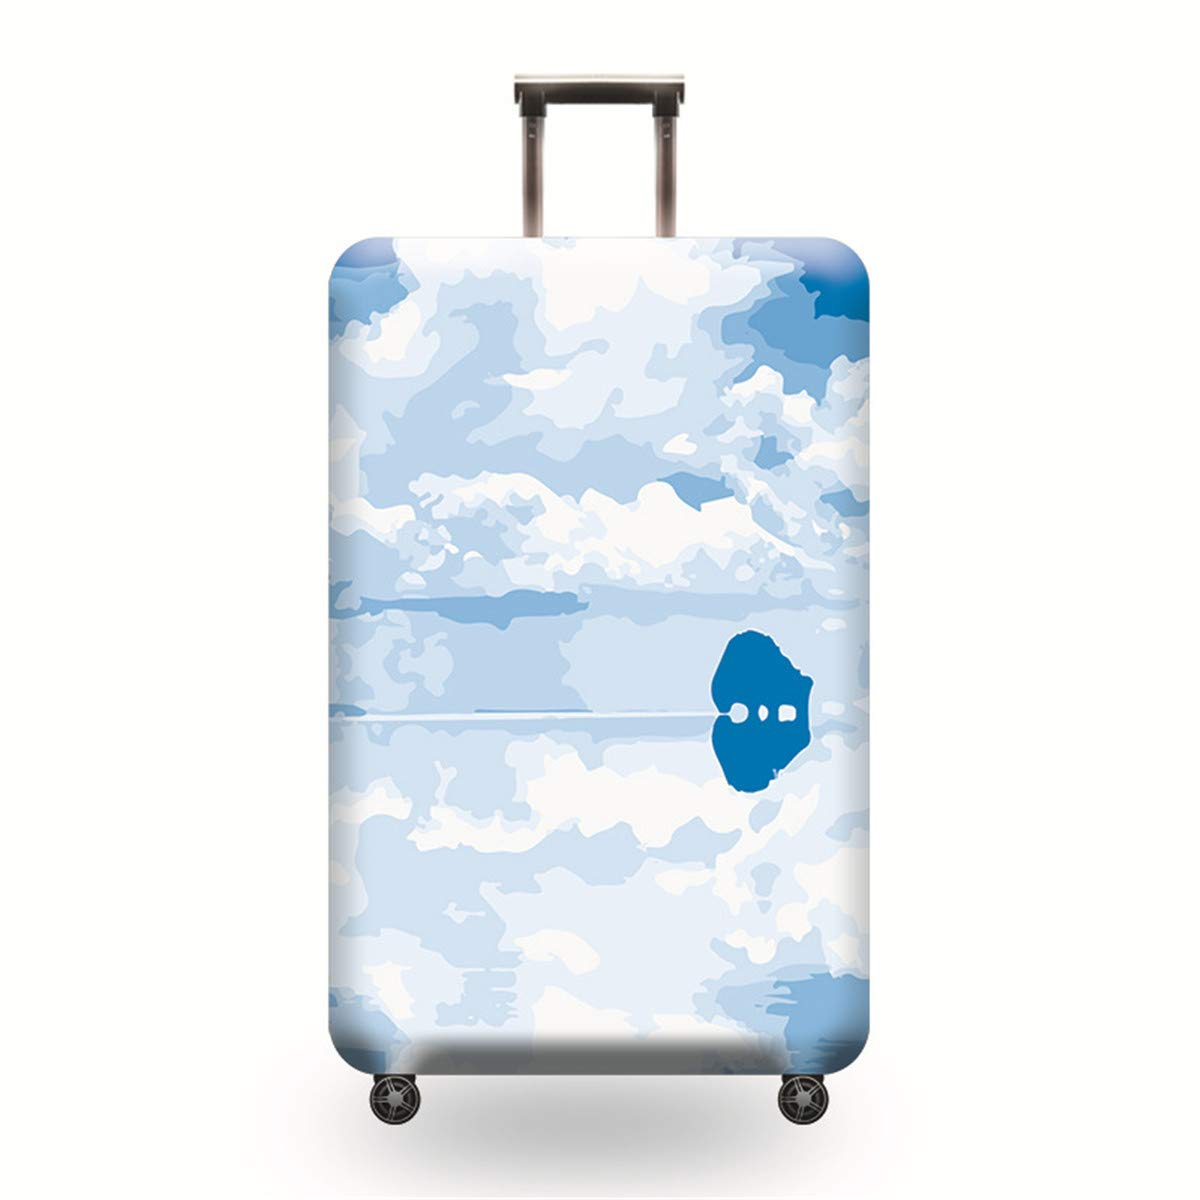 TICKRAN Luggage Cover Personalized Protective Durable Washable Suitcase Protector Size Fits 18-32 Inches,12,XL